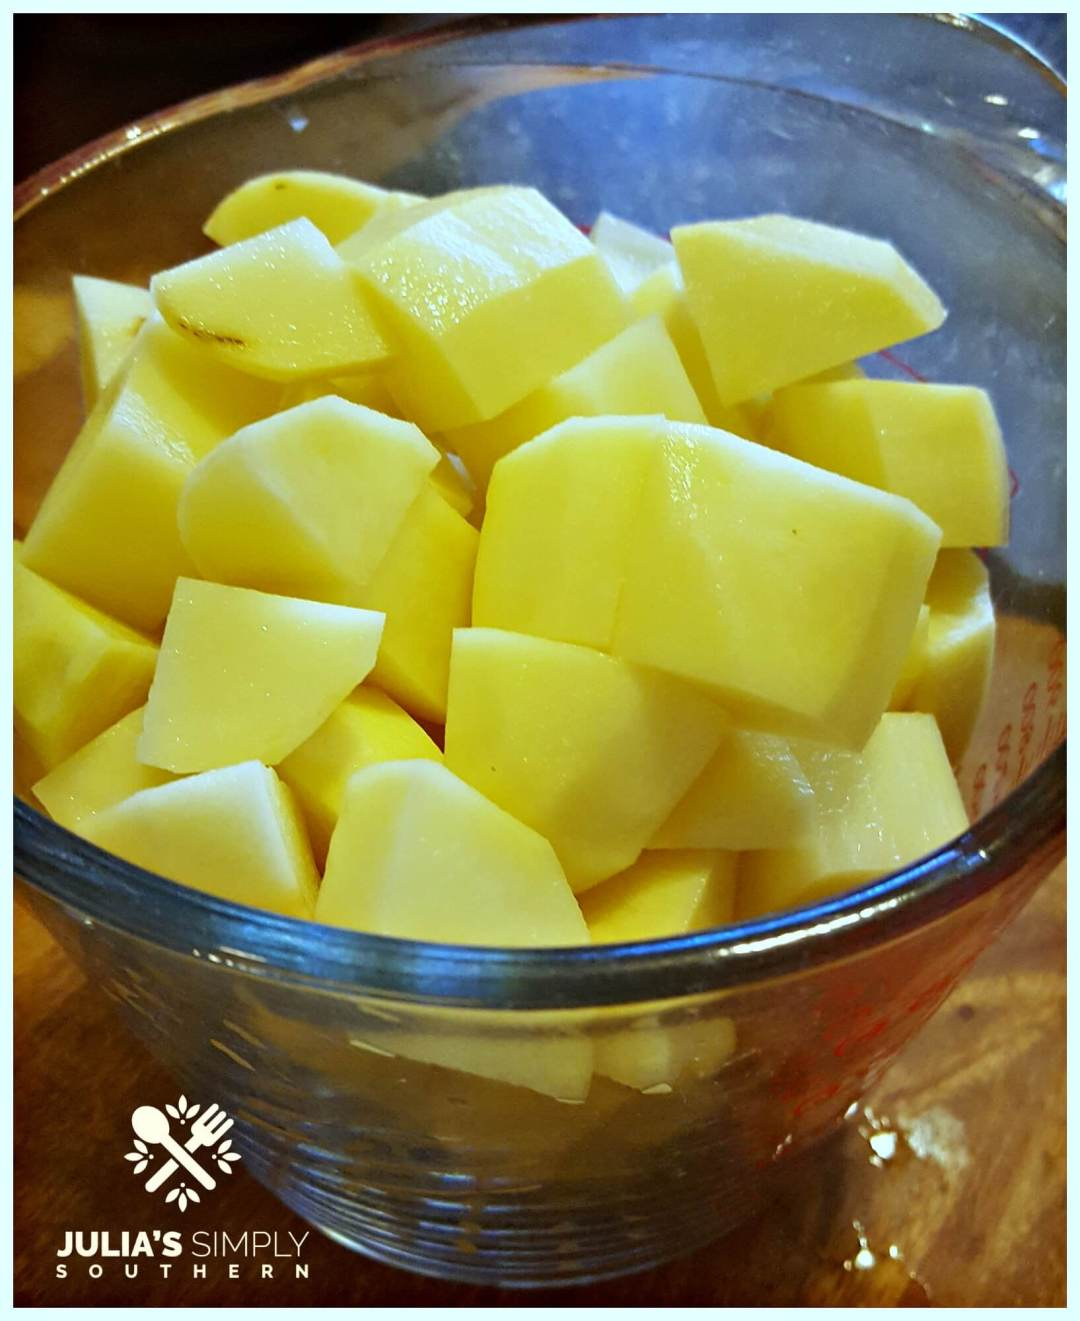 Raw cubes of Russet potato for a potato salad recipe in a large glass measuring cup